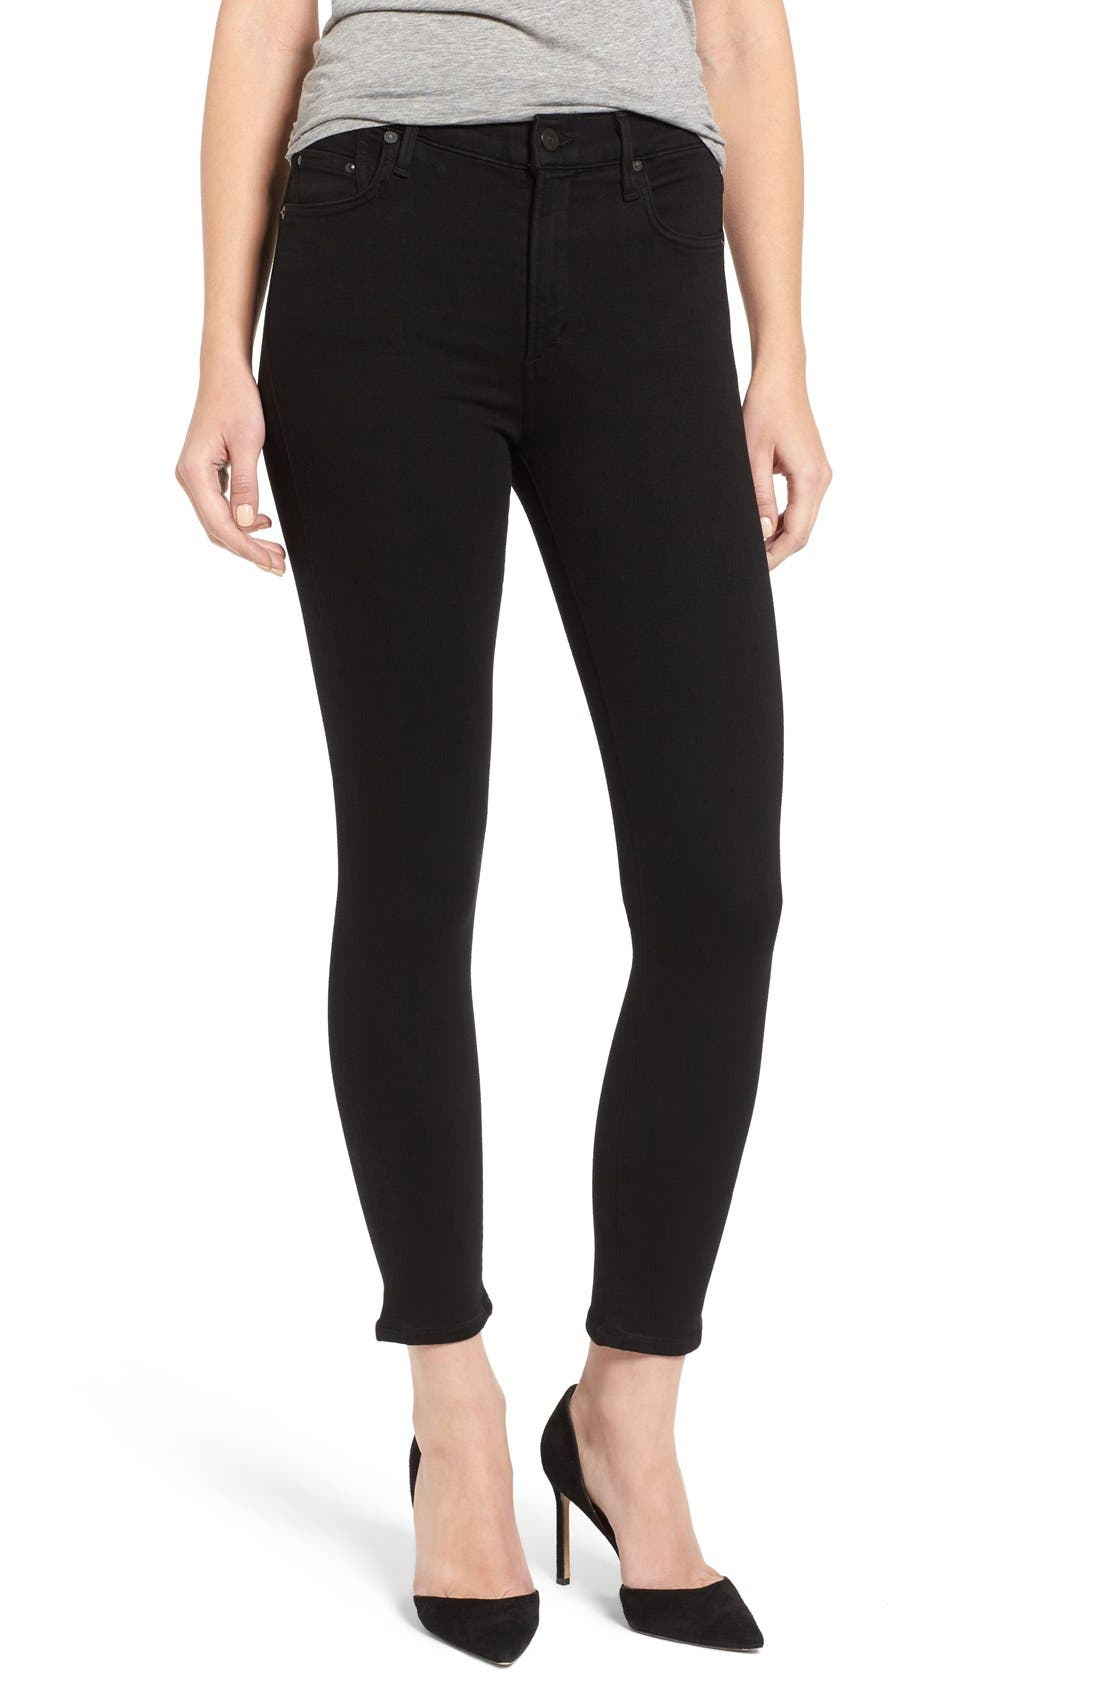 Rocket High Rise Crop Skinny Jeans,                         Main,                         color, All Black